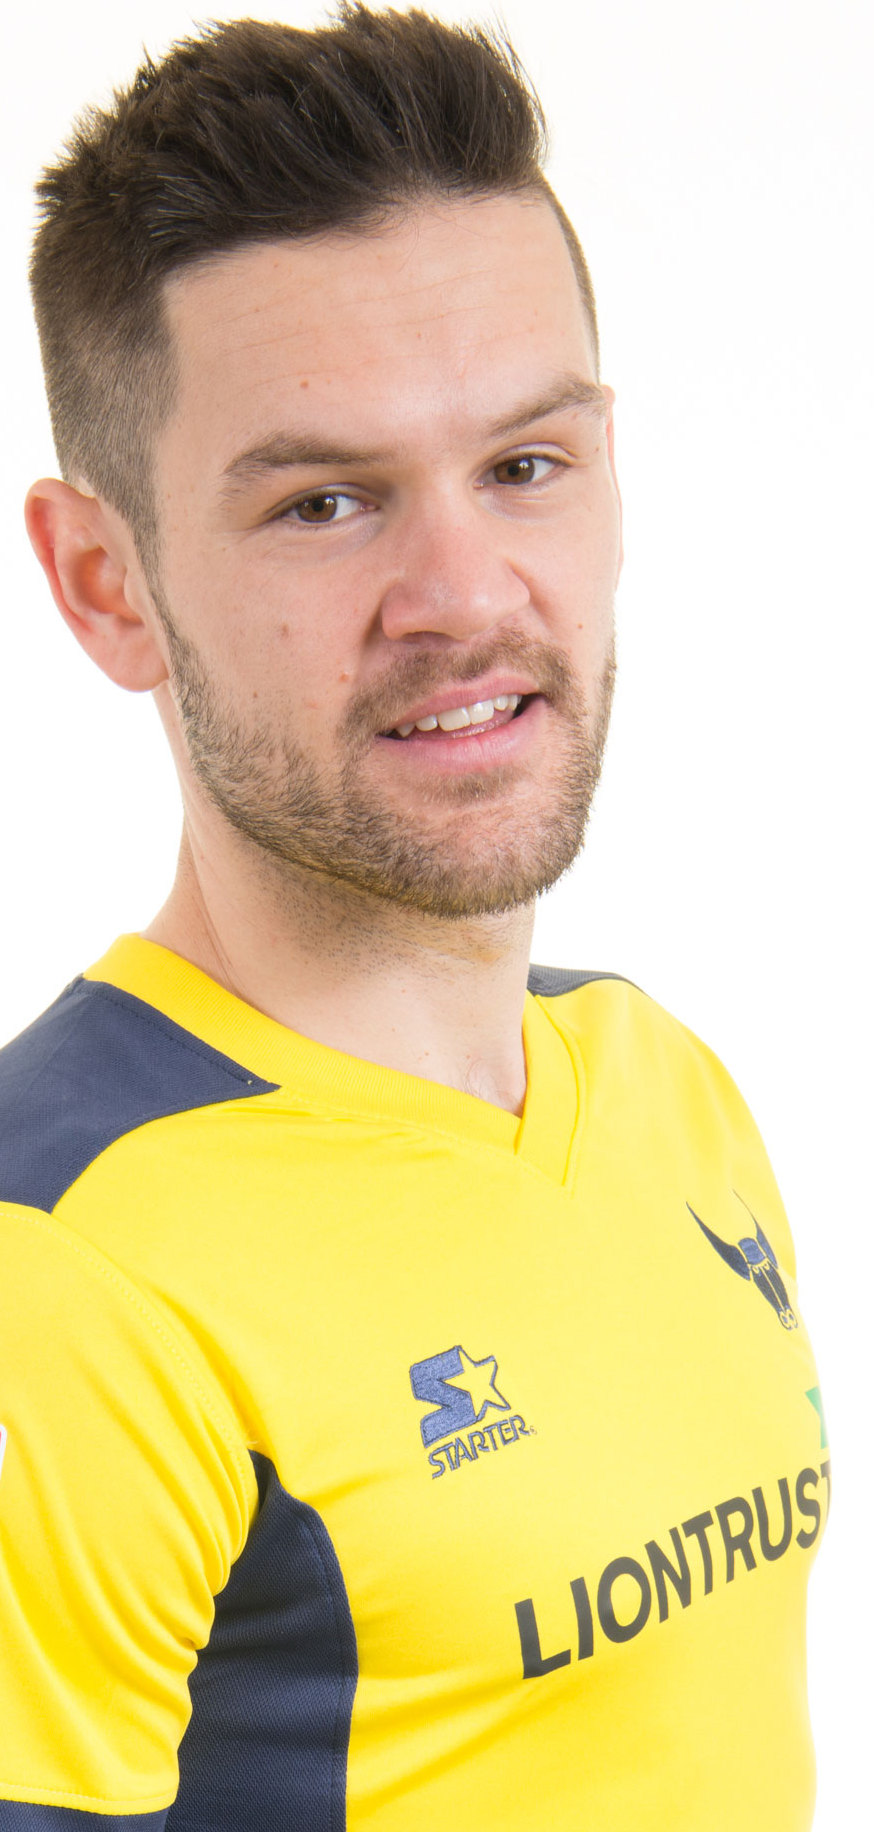 Oxford United midfielder Ivo Pekalski suffered a cruciate knee ligament injury during his first training session with the club